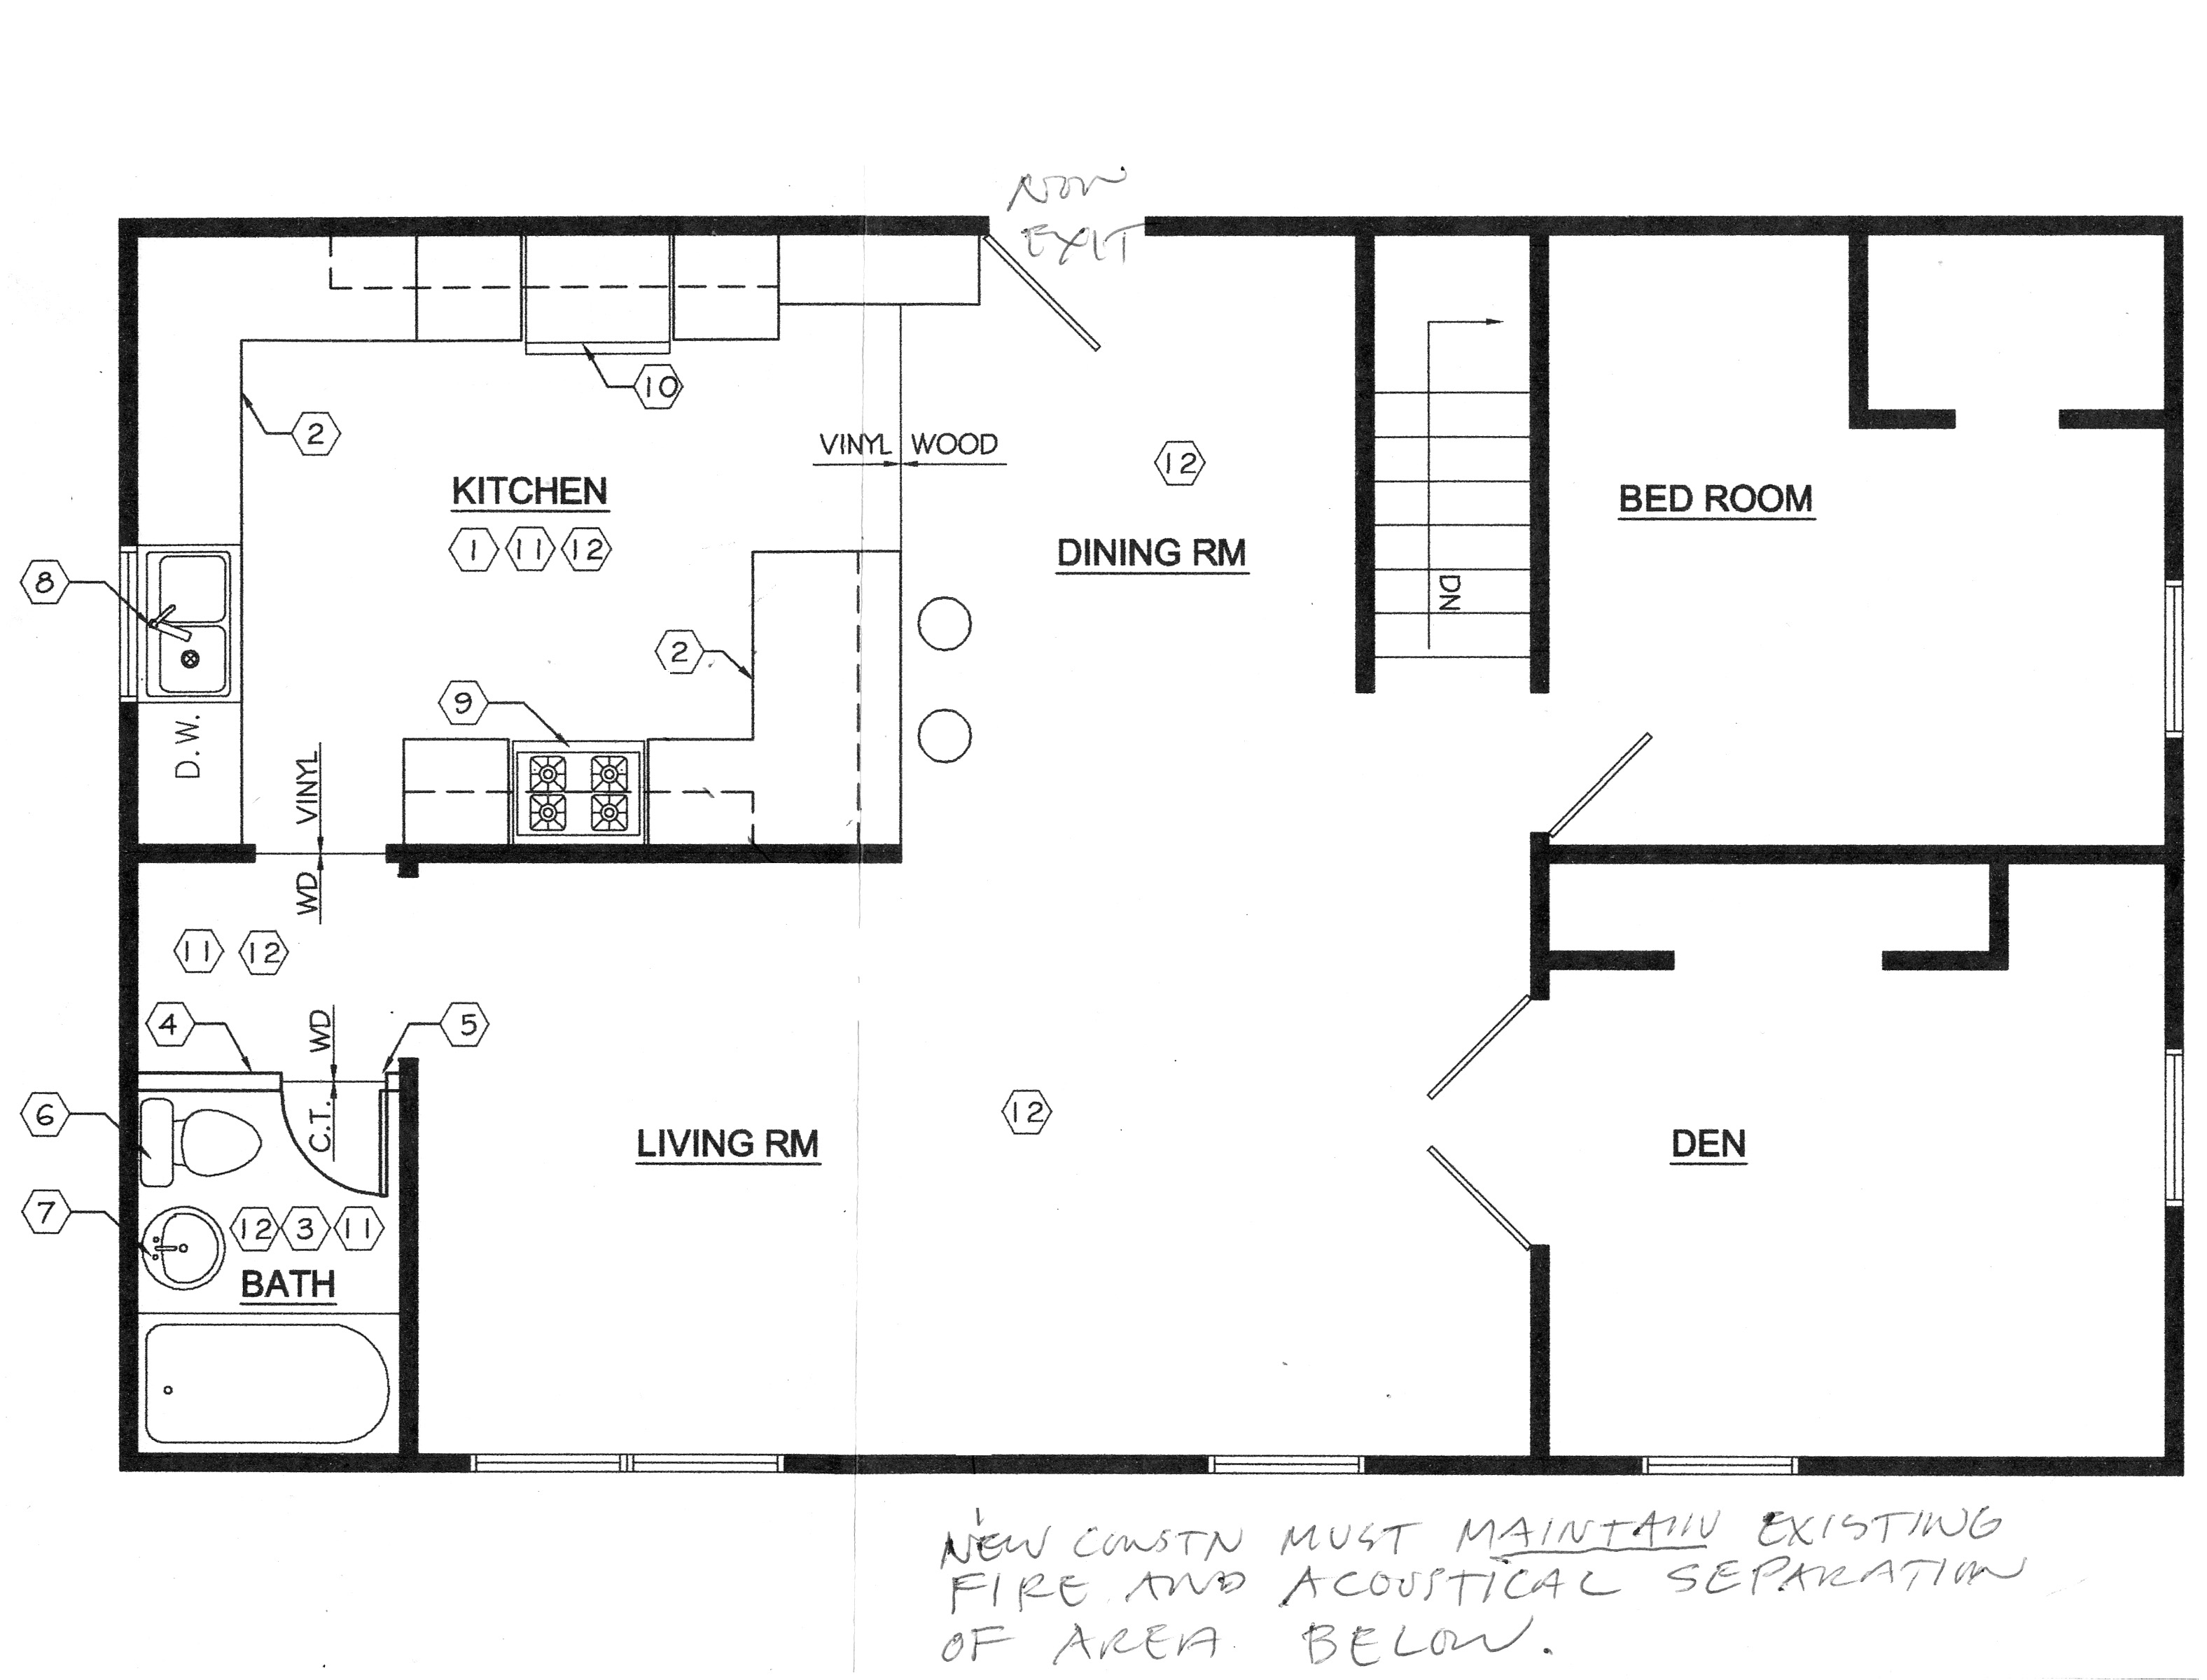 Floor Plans This Odd House: floor design